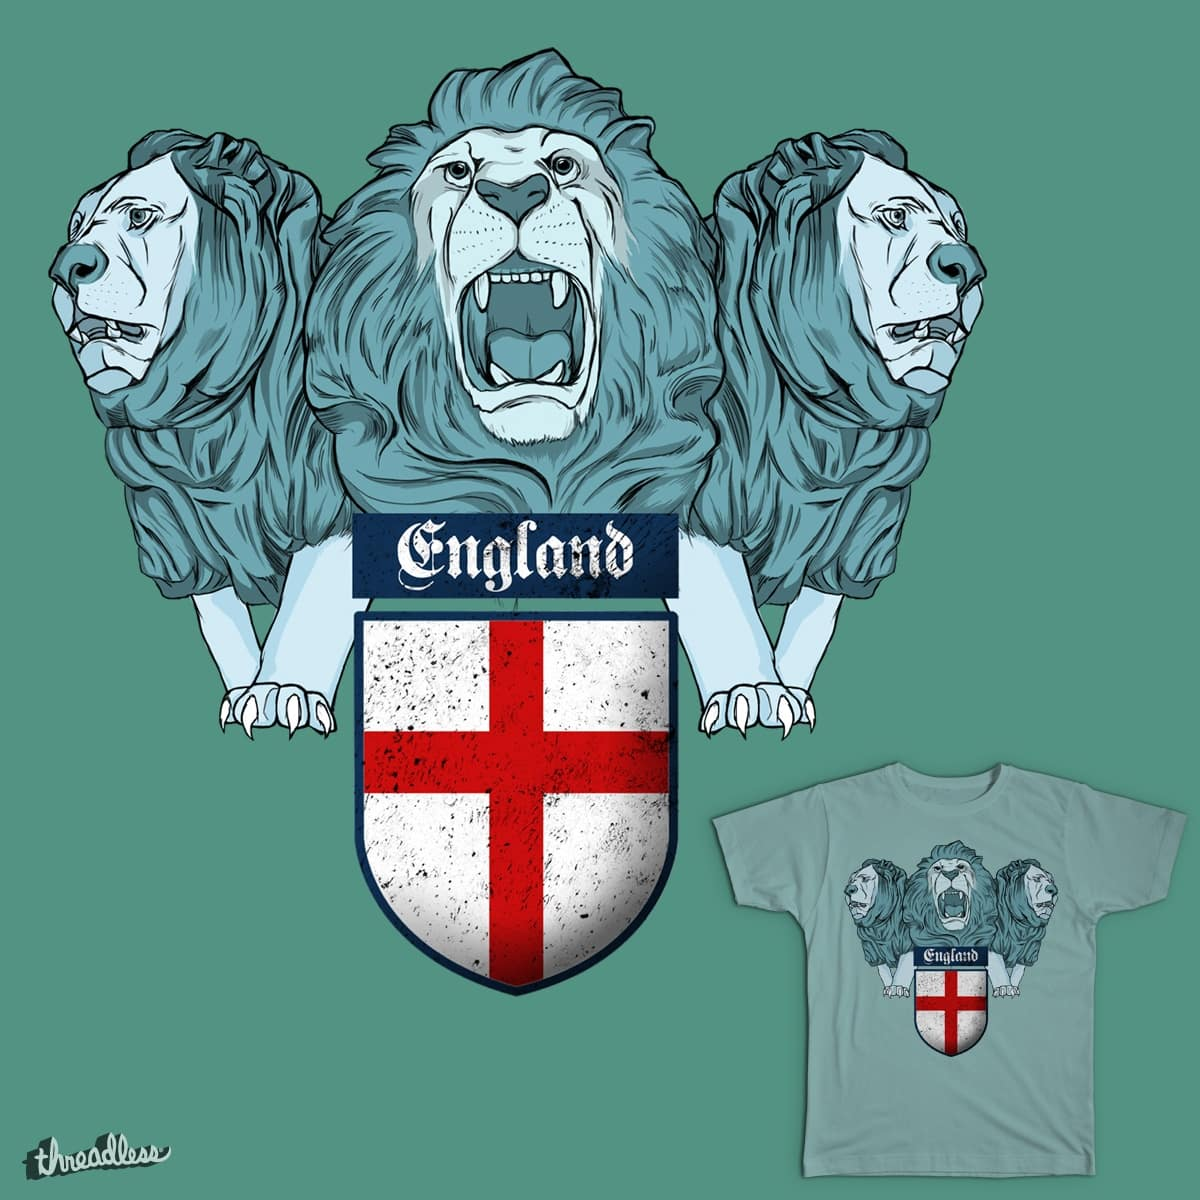 Come On England by BadPony on Threadless